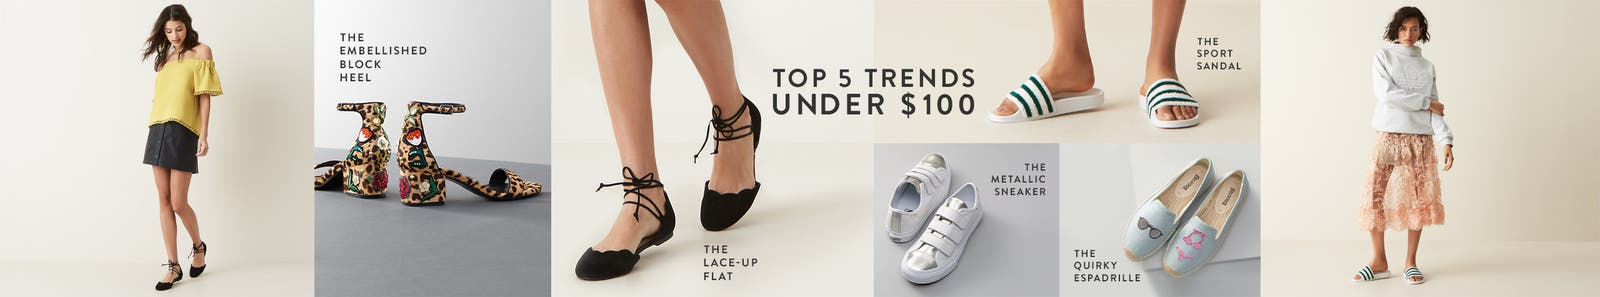 Top five trends under $100.